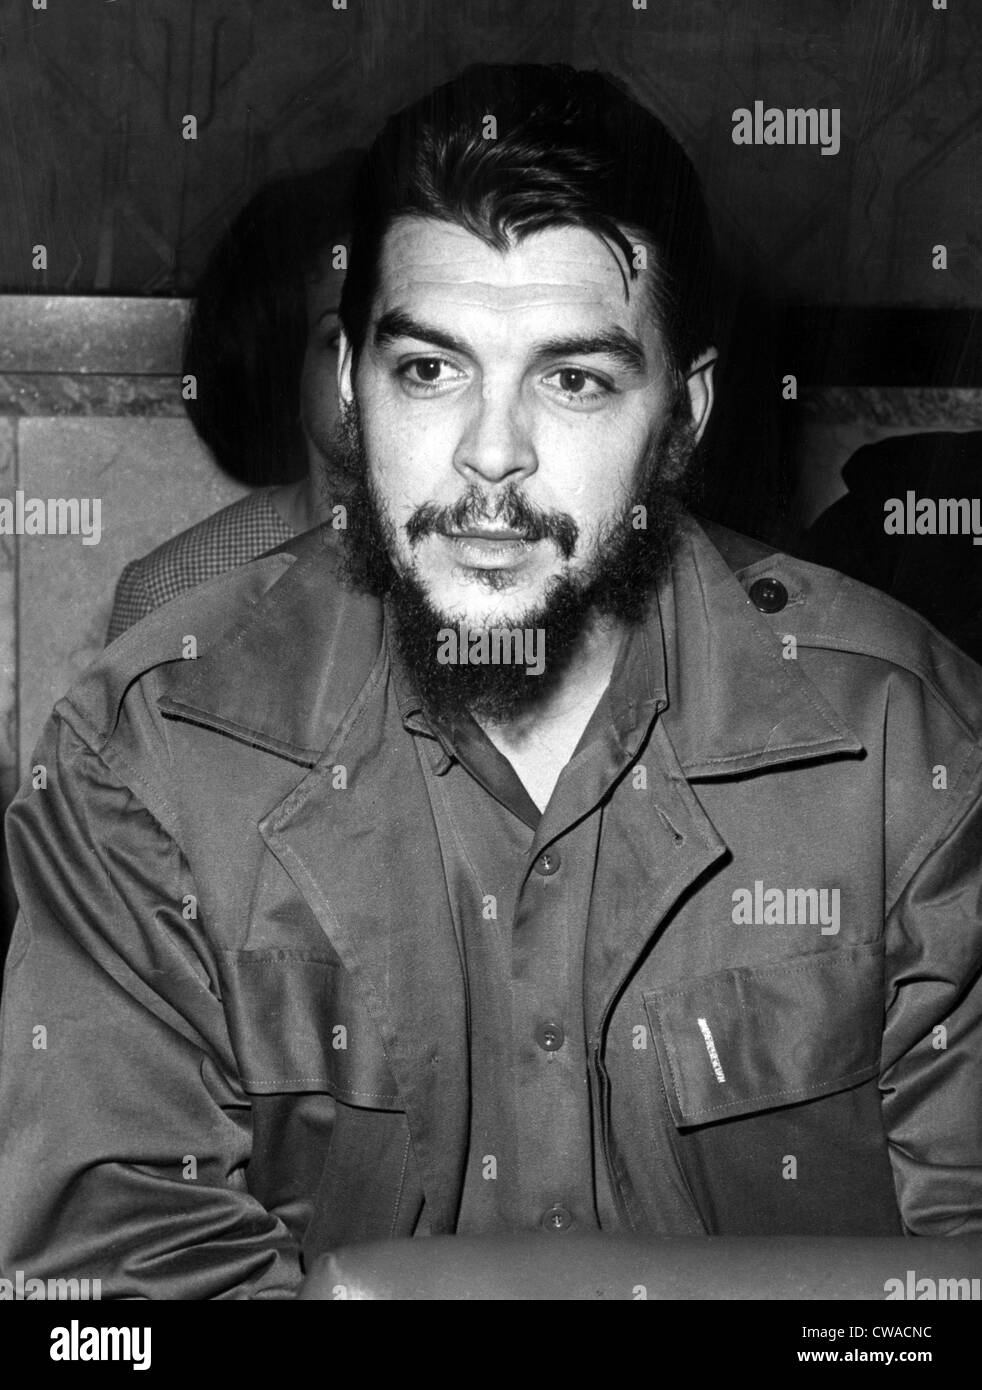 Ernesto Guevara Photos Ernesto Guevara Images Alamy